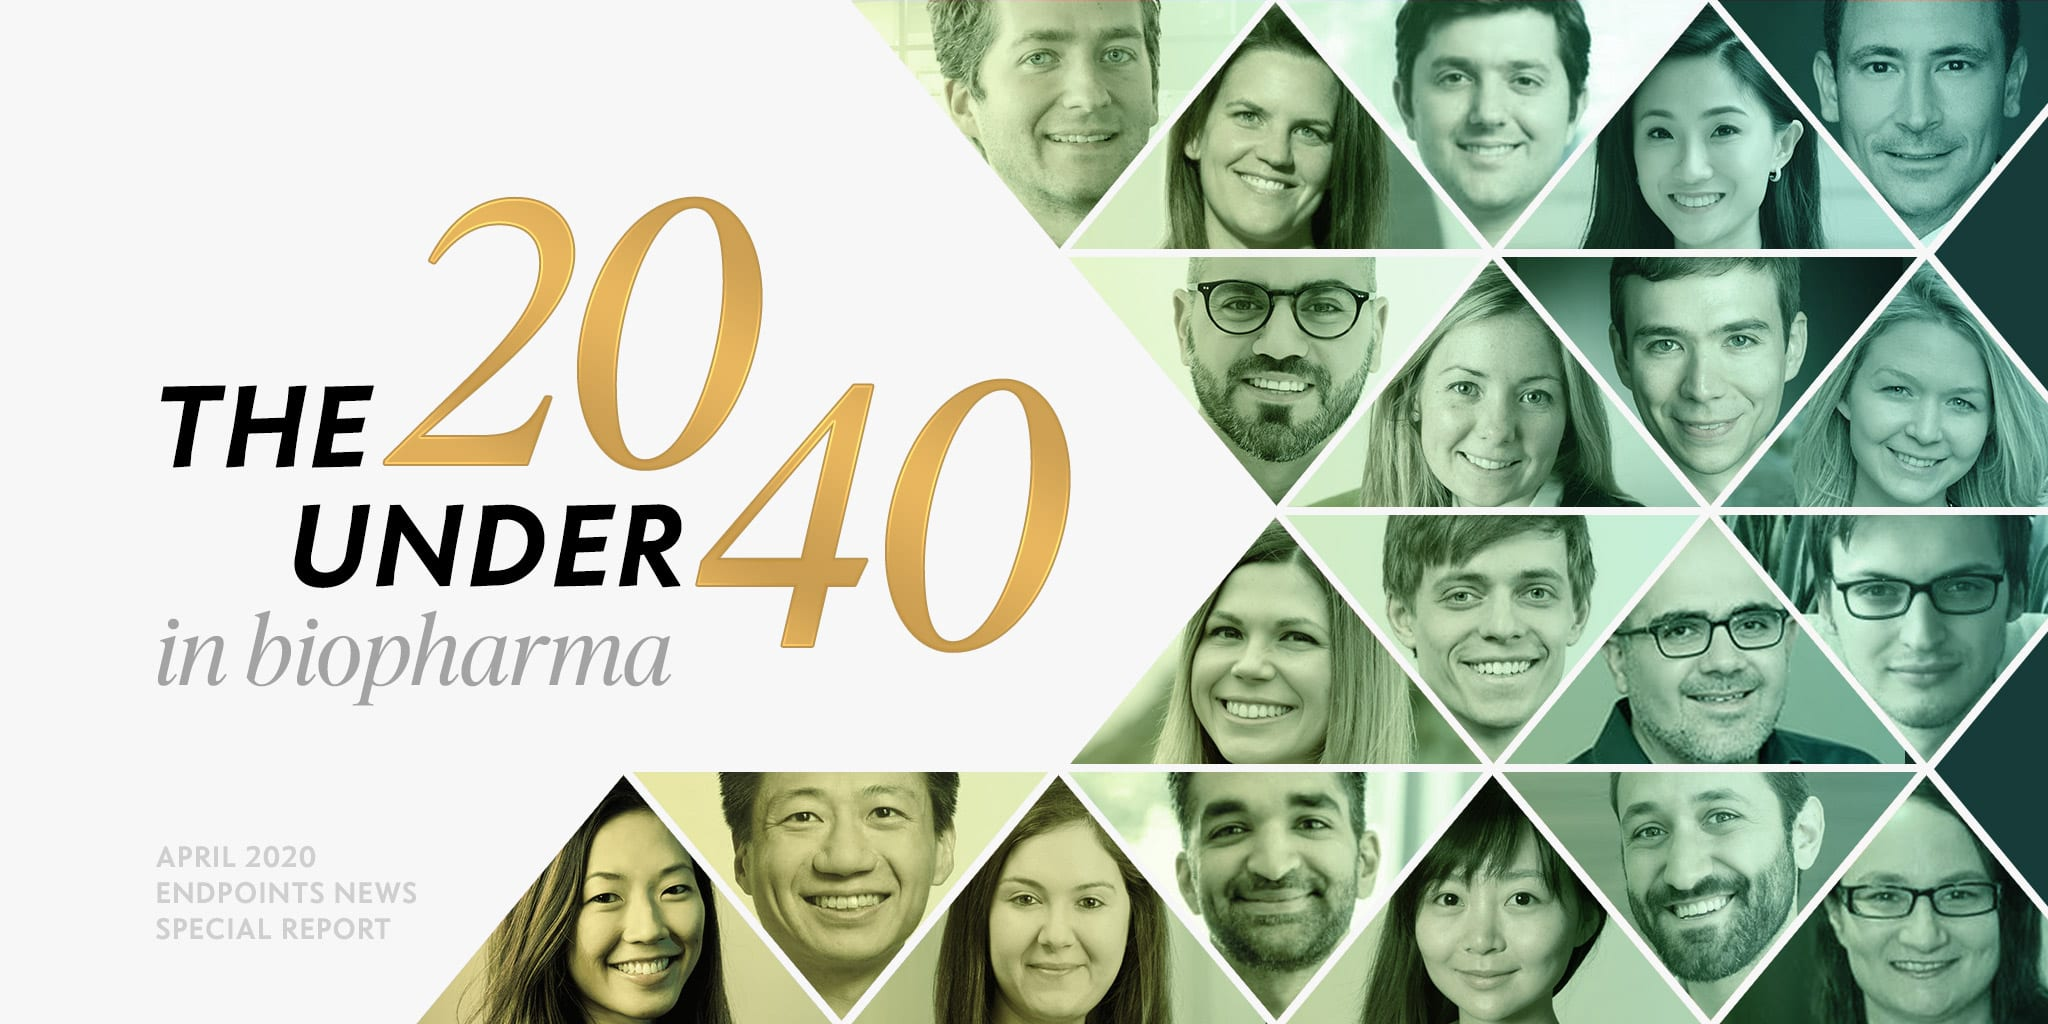 The 20 under 40: Inside the next generation of biopharma leaders